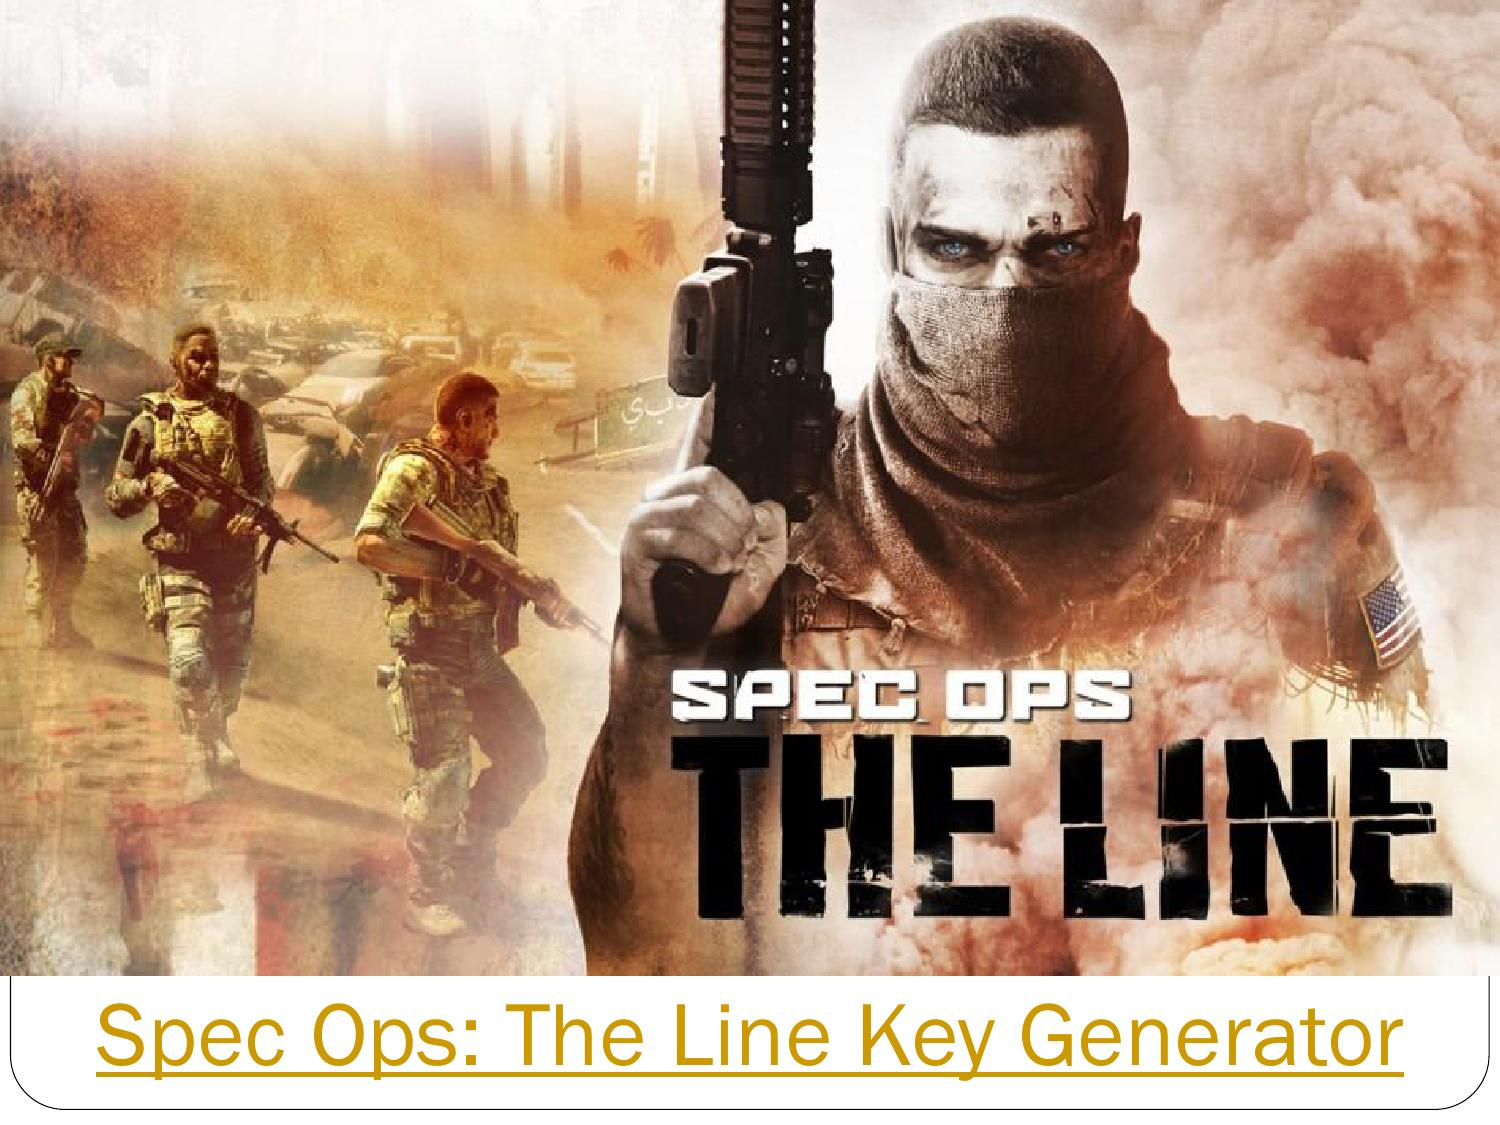 Spec ops the line key generator by Mana - issuu